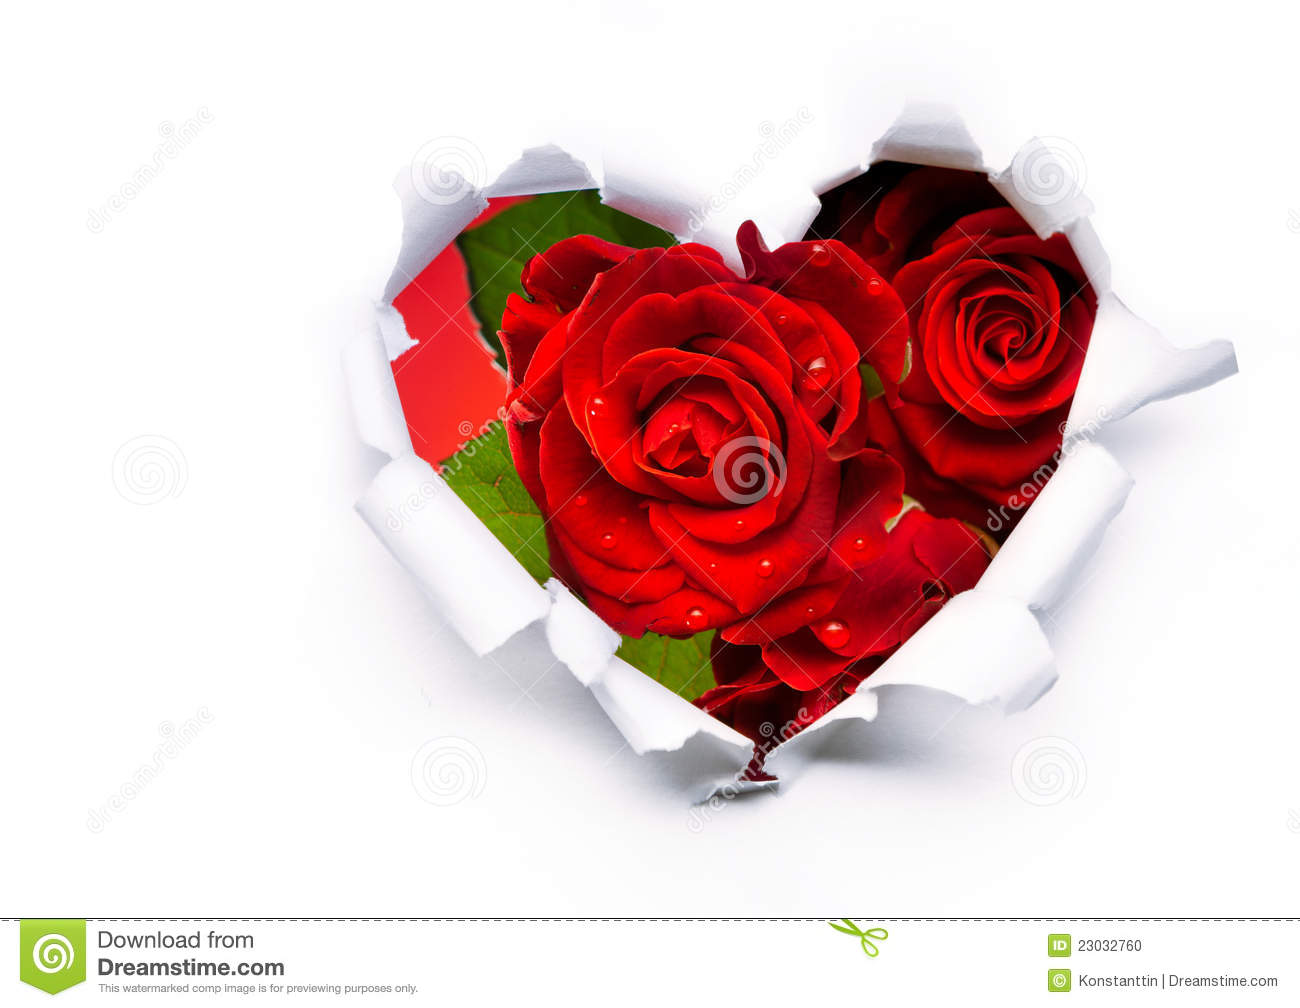 analytical essay red red rose A red, red rose thank you robert burns, a poor man, an educated man, and a ladies' man, is representative of scotland, much like whisky, haggis, bagpipes, and kilts.